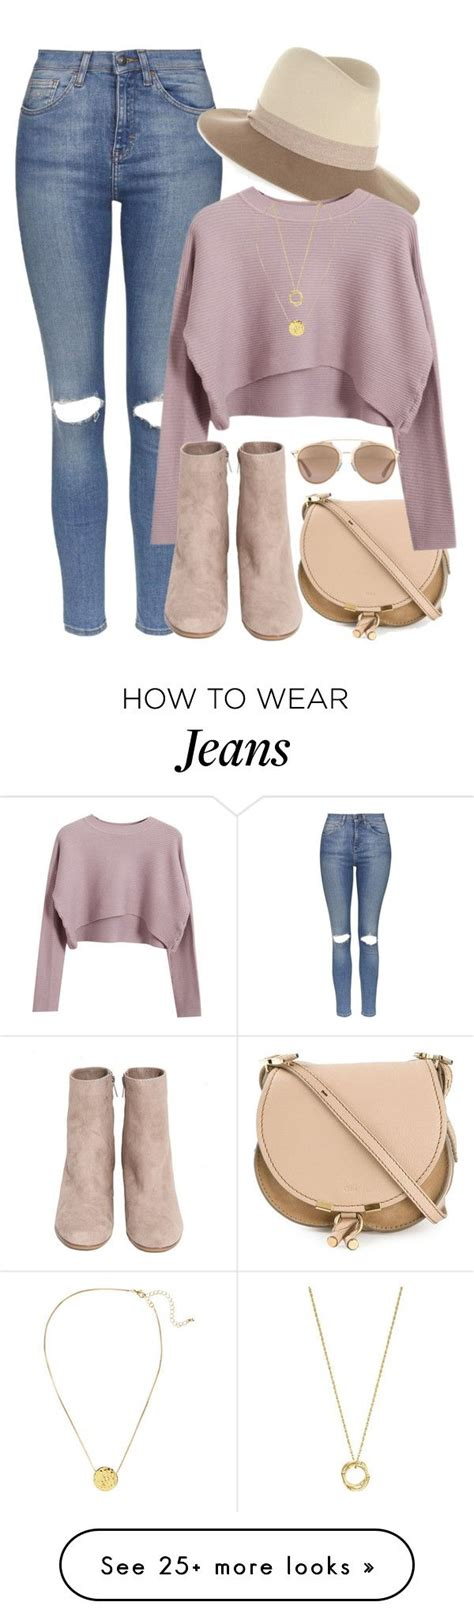 25+ best ideas about Instagram outfits on Pinterest